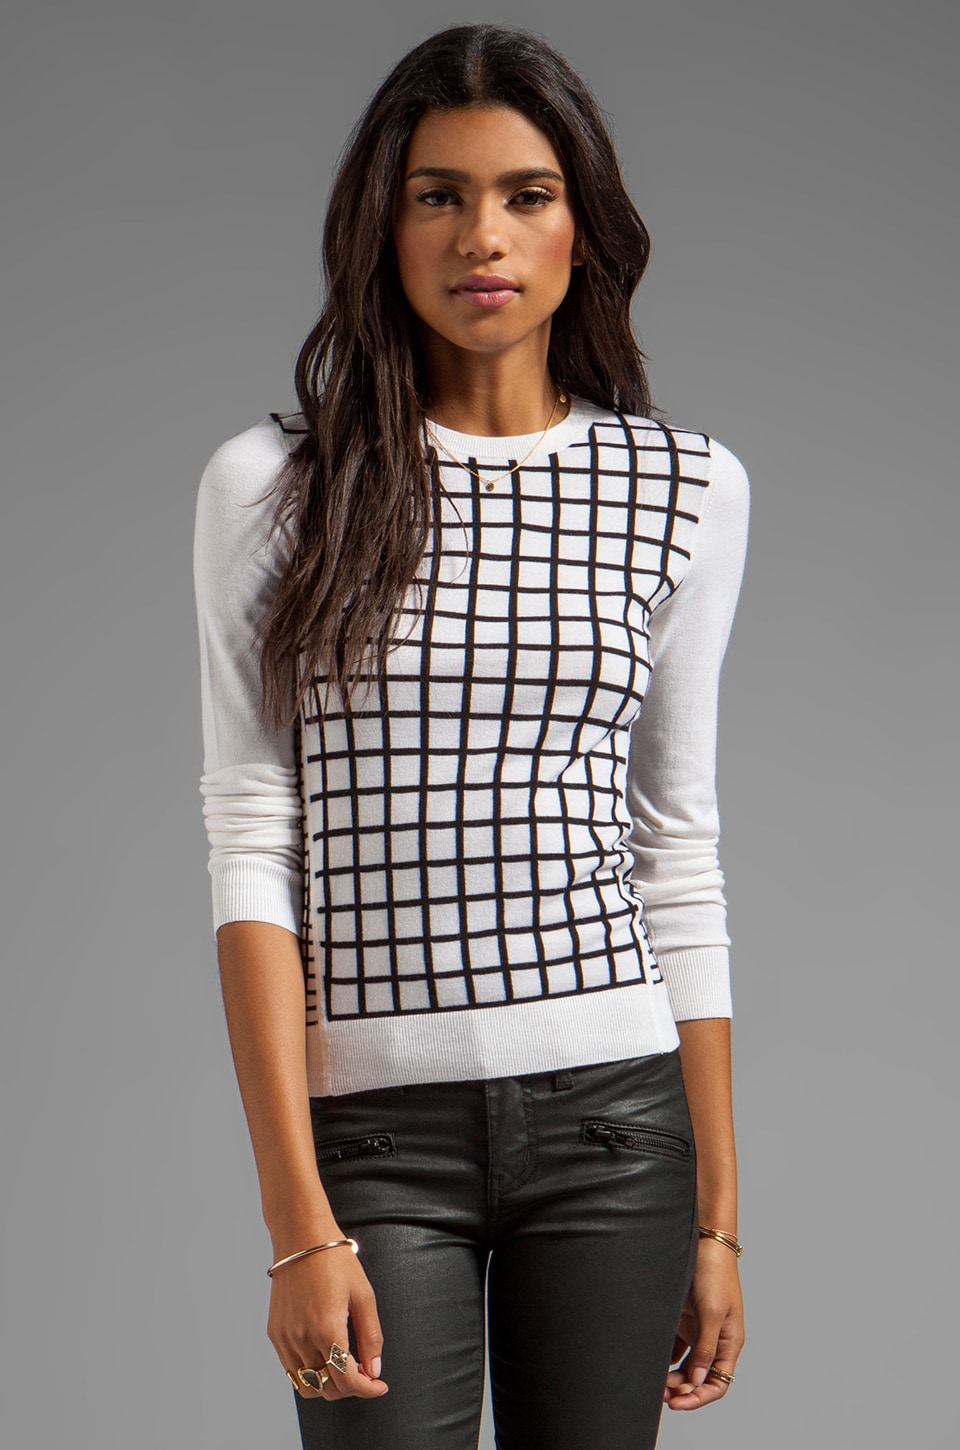 Theory Tommie FS Sweater in Ice White/Black